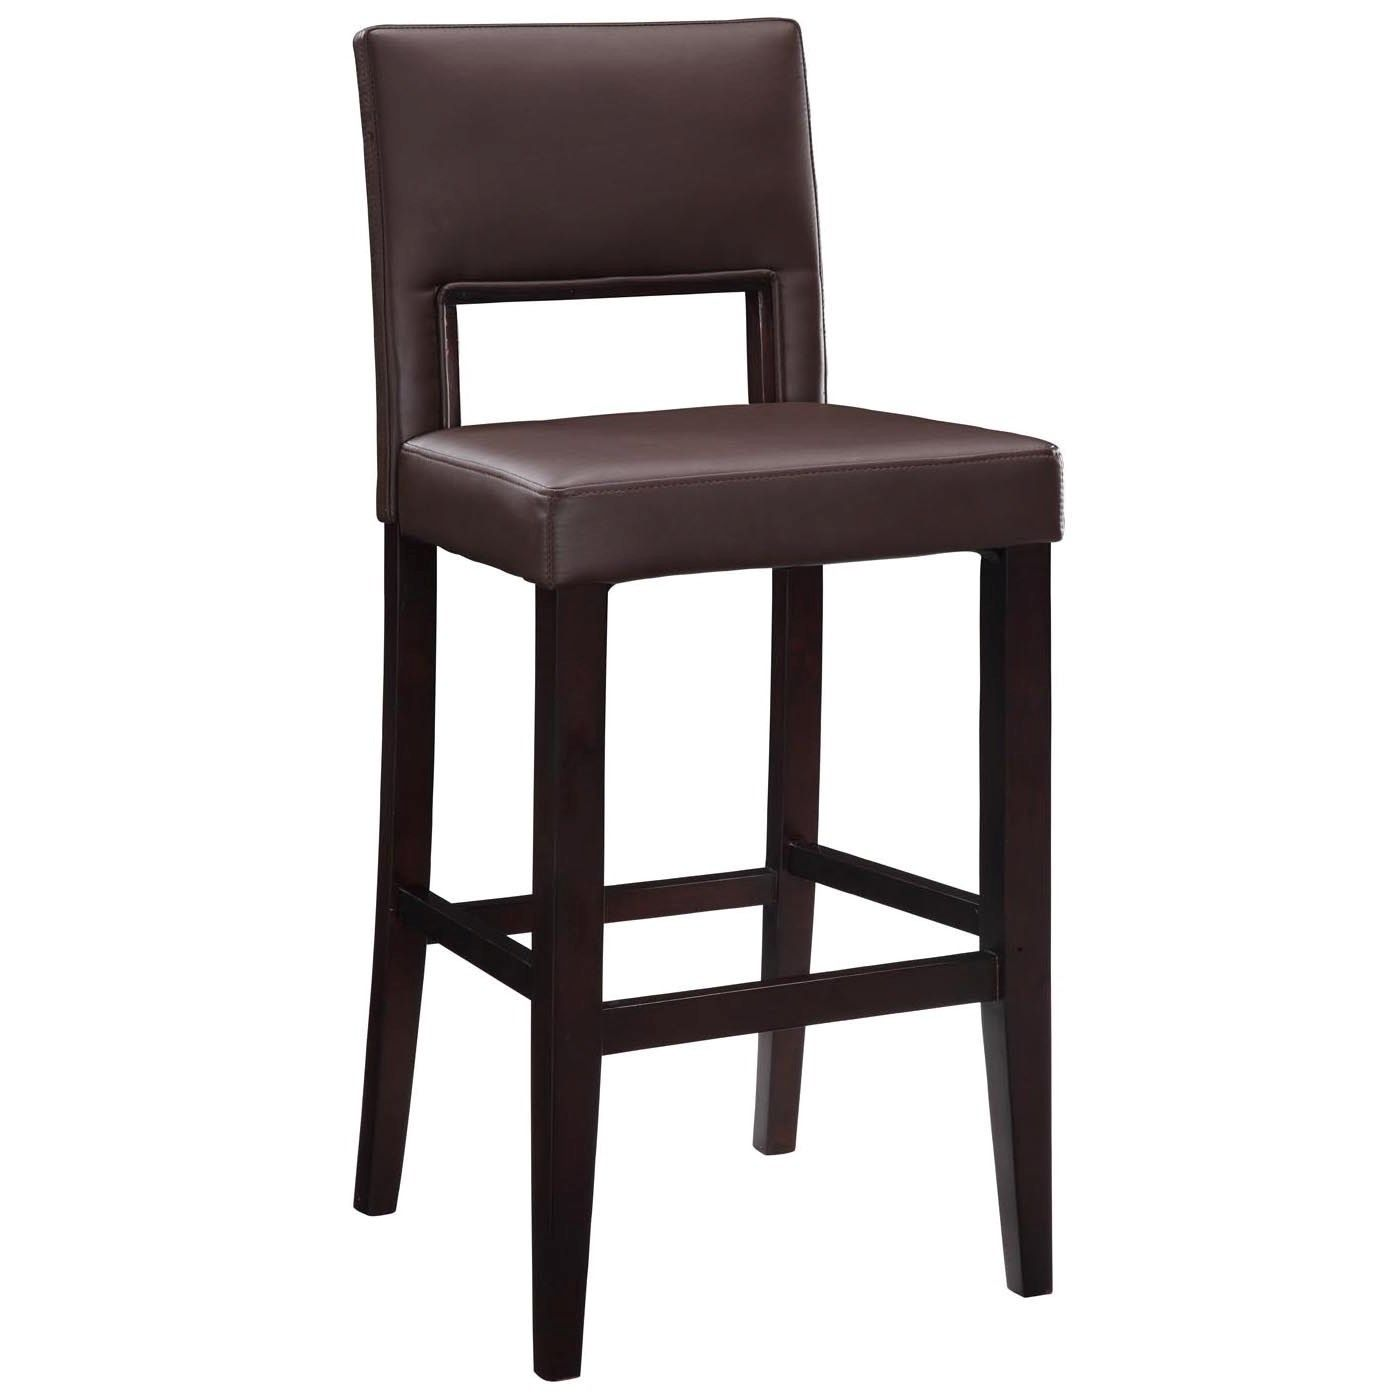 faux leather bar stools. Durable Enough For A Busy Kitchen, Yet Elegant More Formal Setting, This Zeta Counter Bar Stool Is Sure To Please. Tall Made With Faux Leather Stools